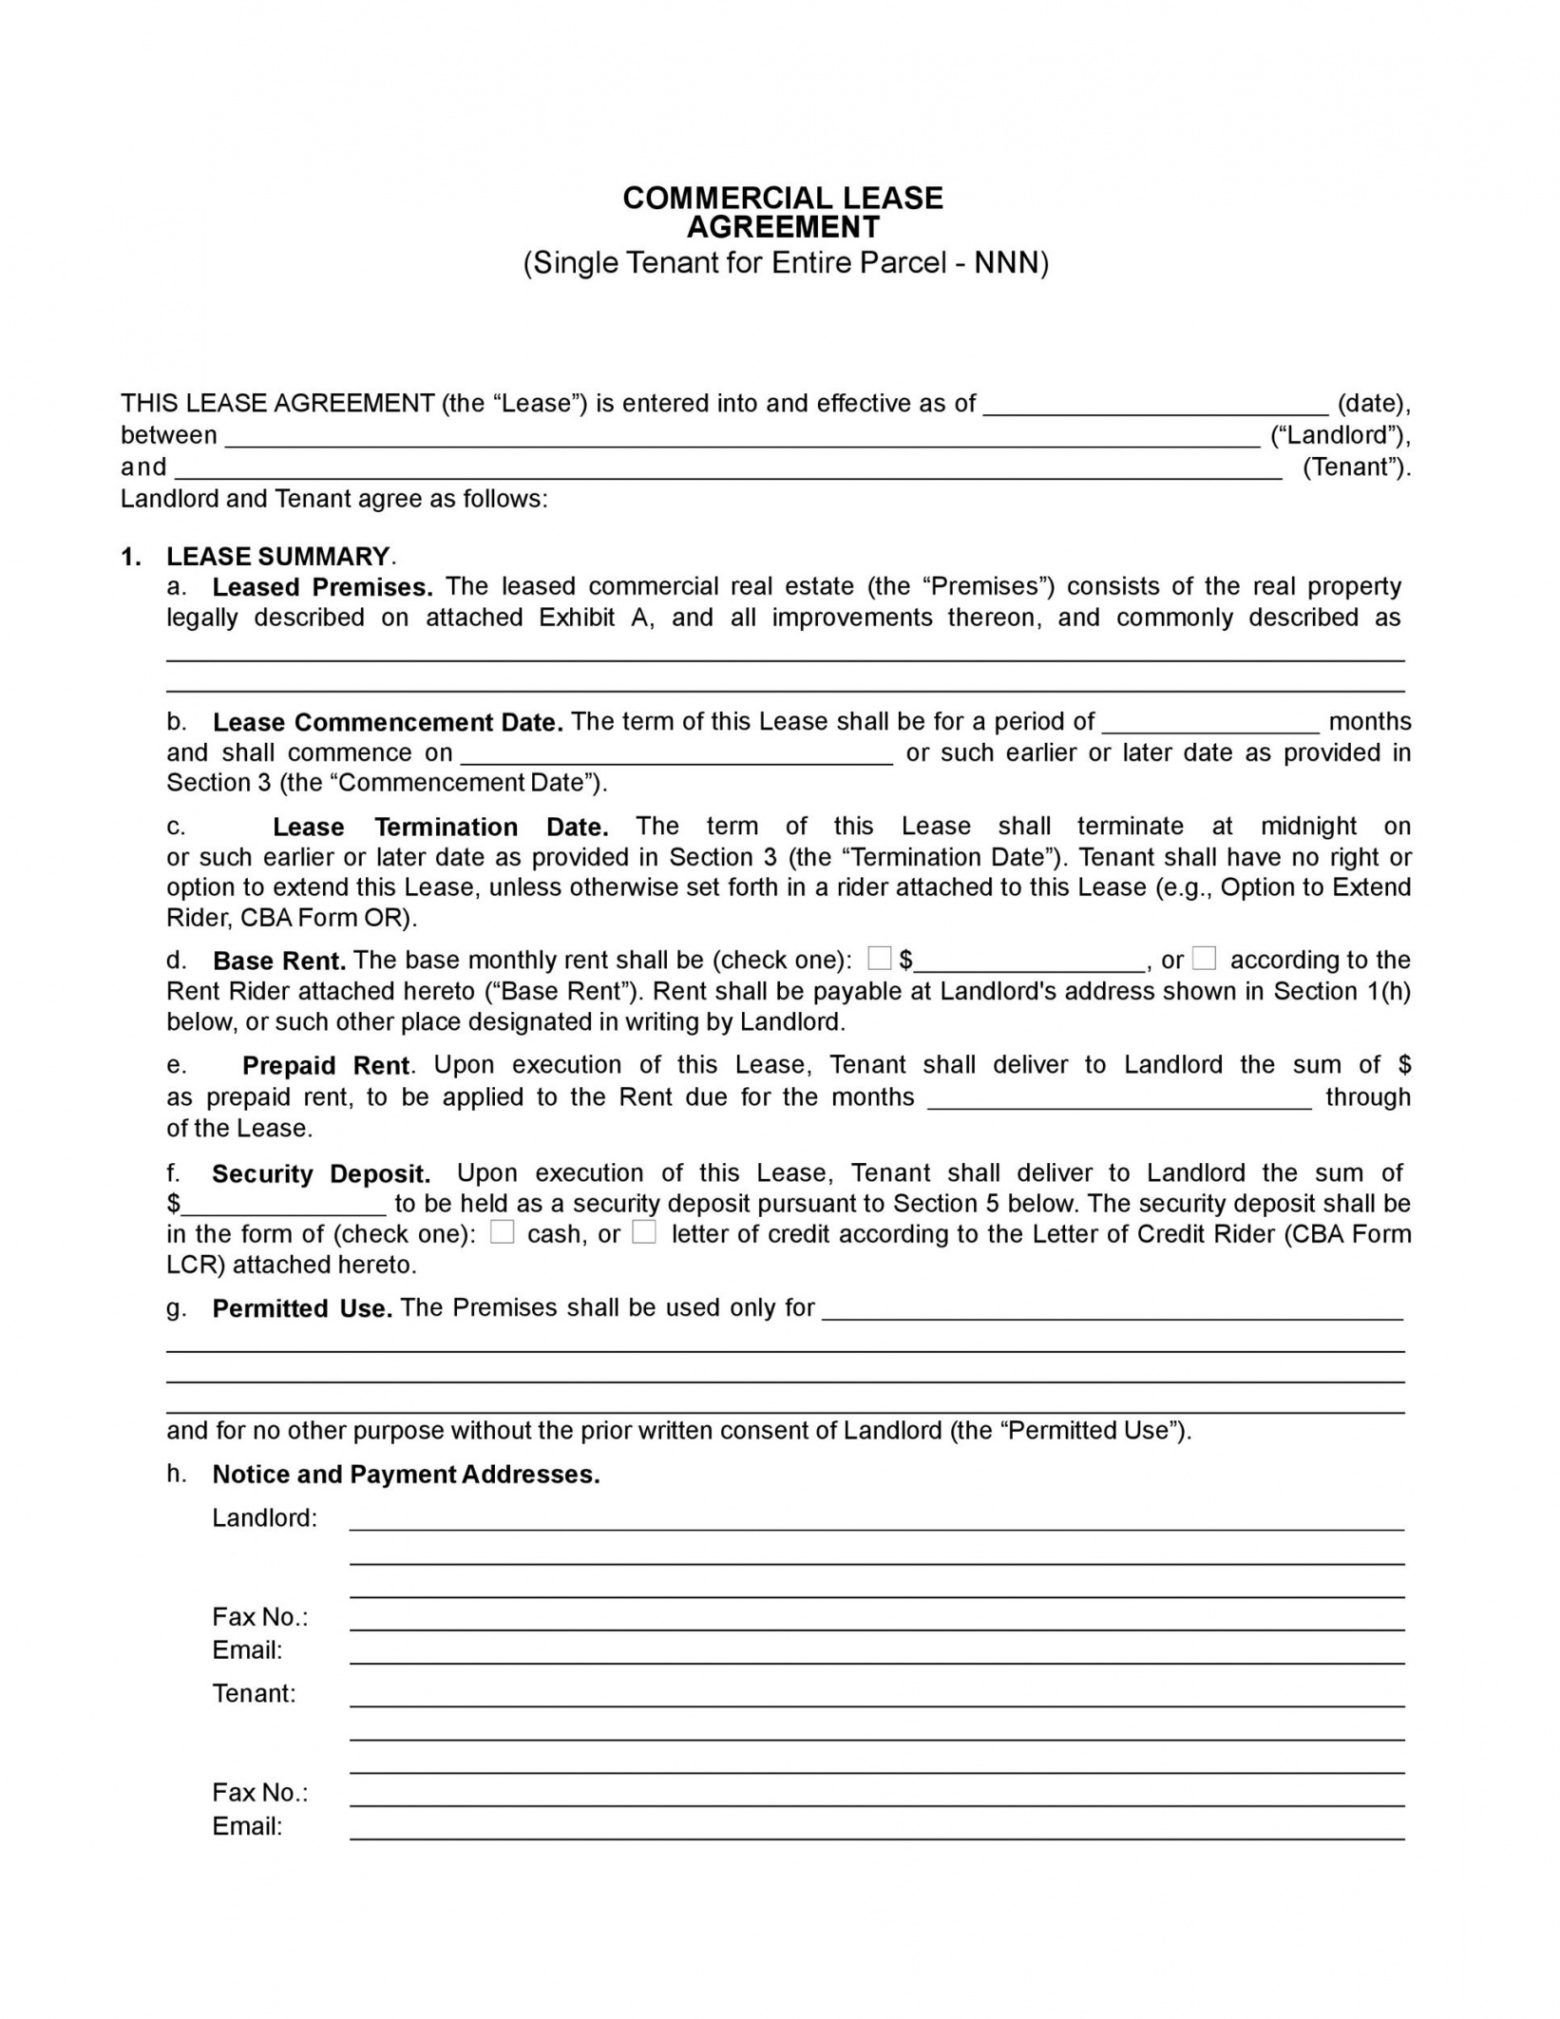 26 free commercial lease agreement templates  templatelab real estate lease agreement template example